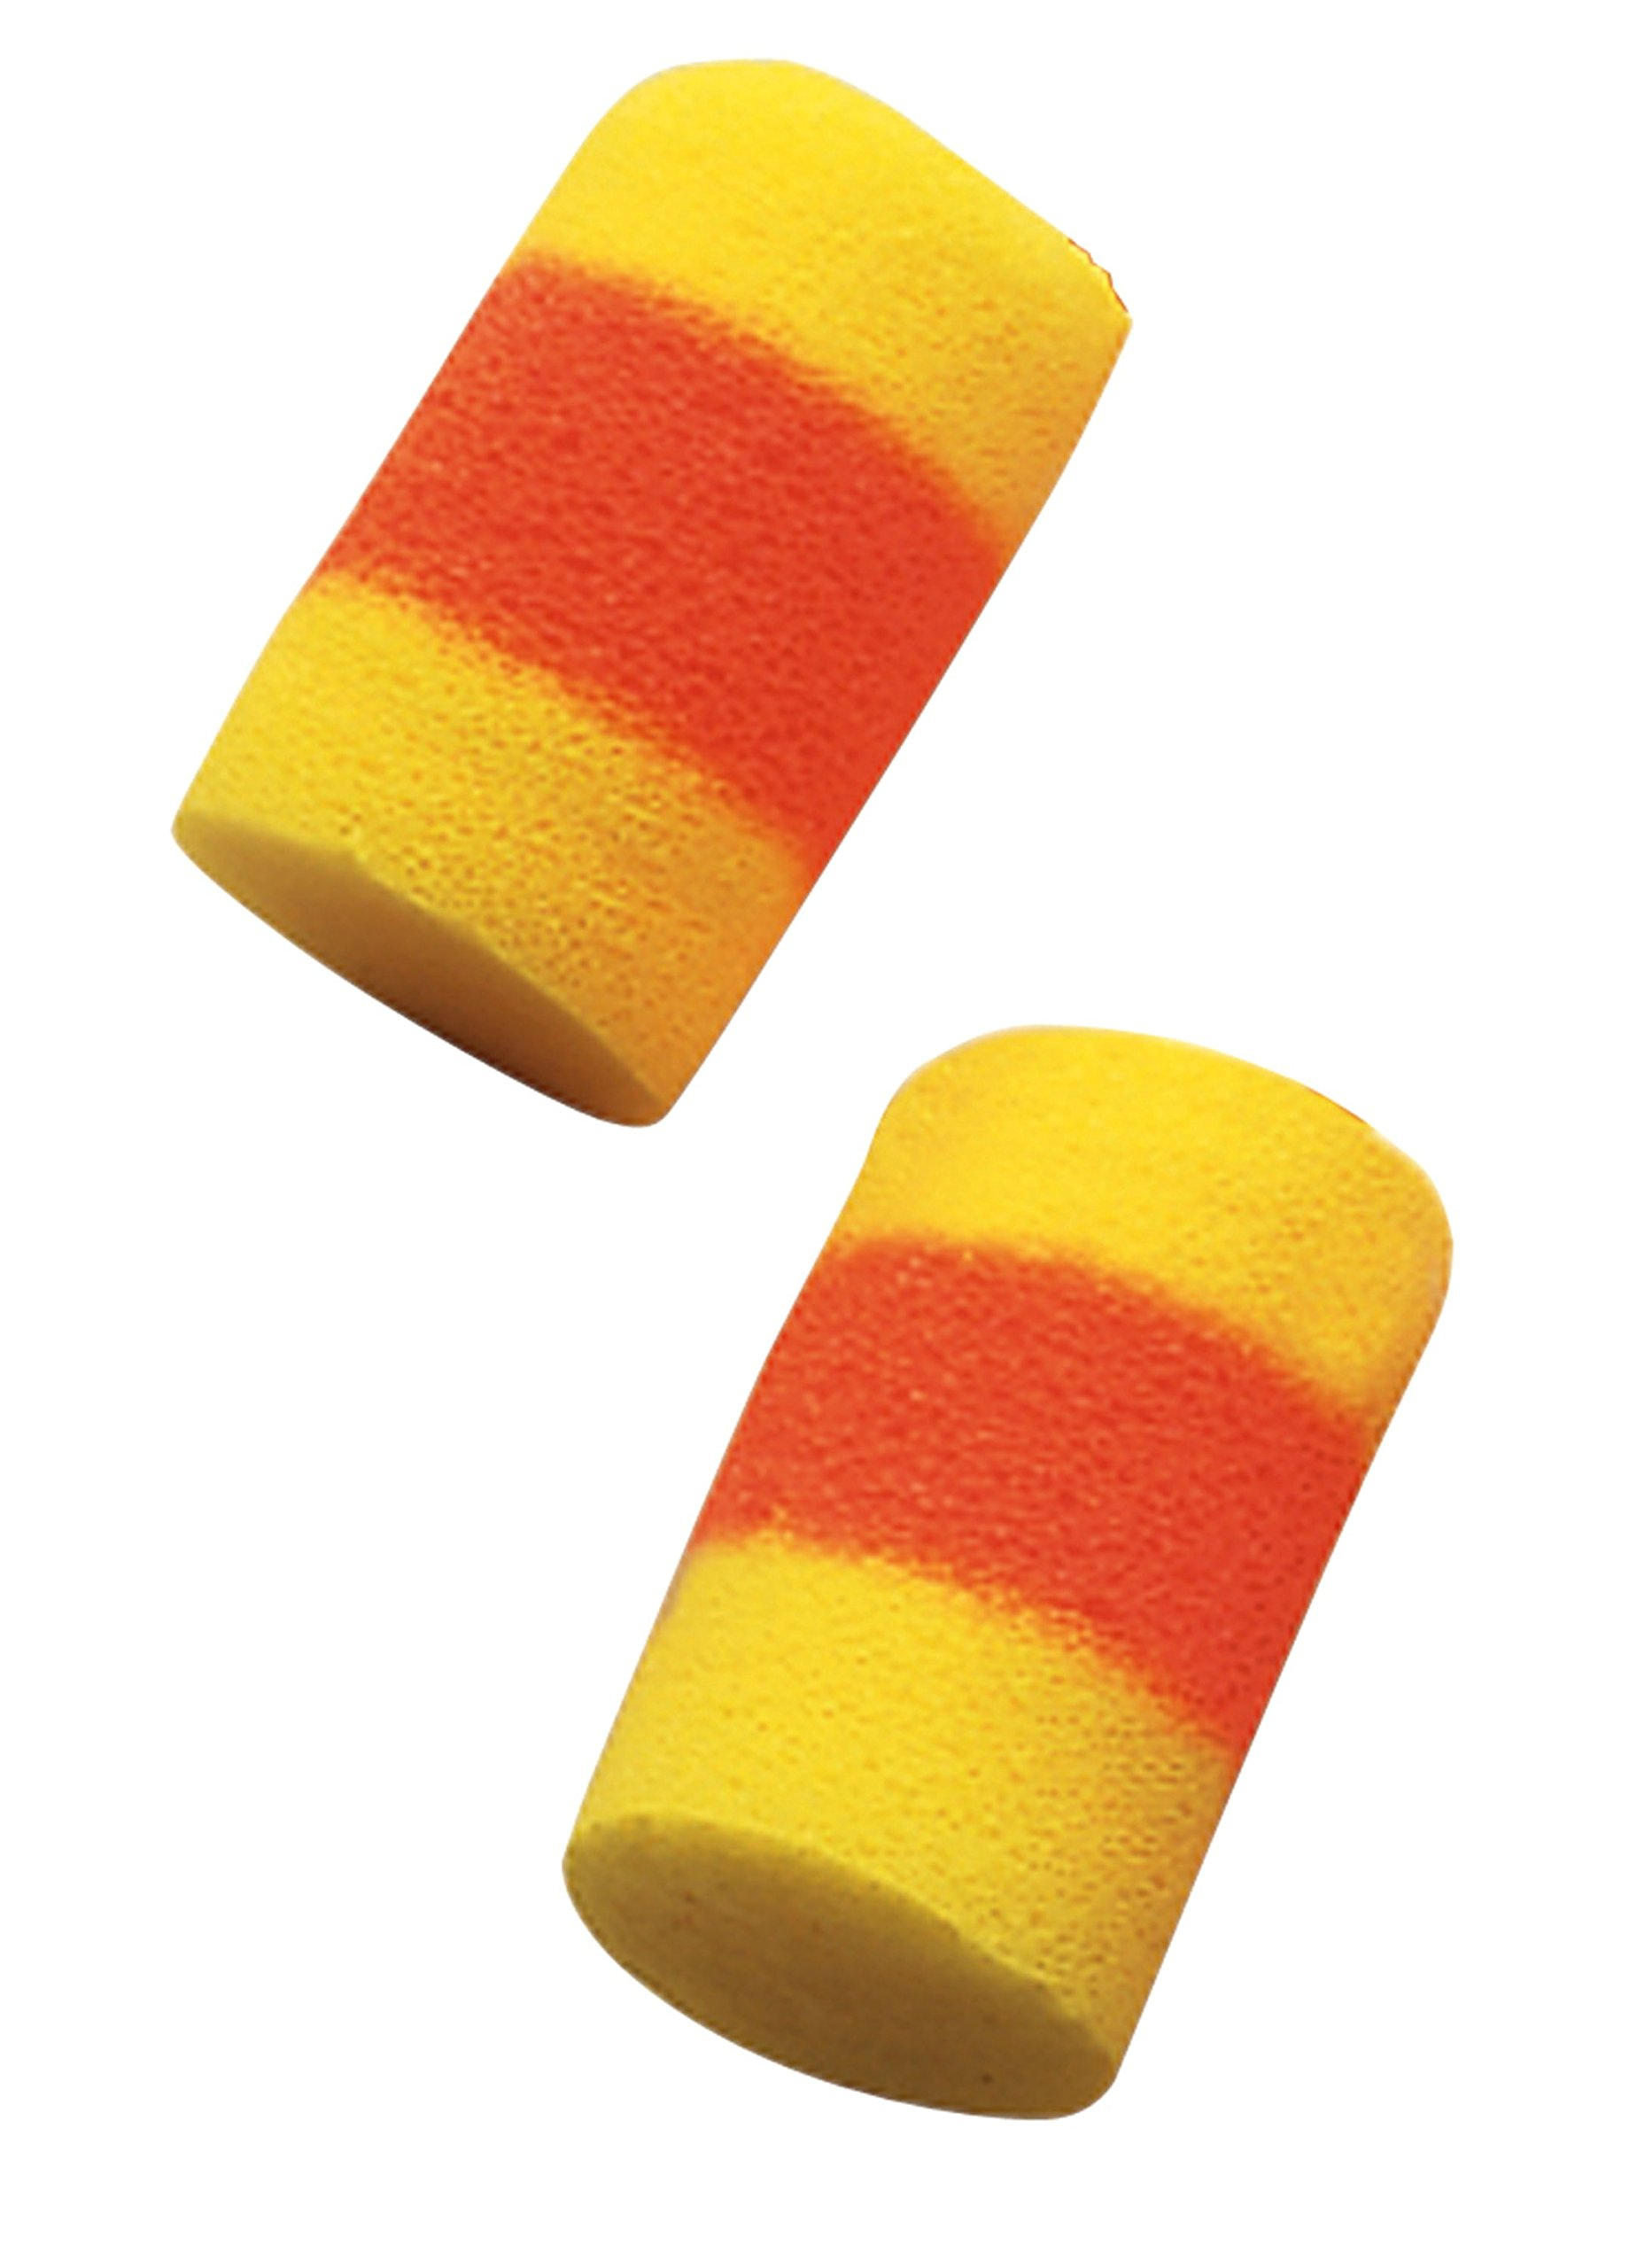 3M E-A-R Classic SuperFit 33 Uncorded Earplugs 310-1008, in Pillow Pack by 3M Personal Protective Equipment